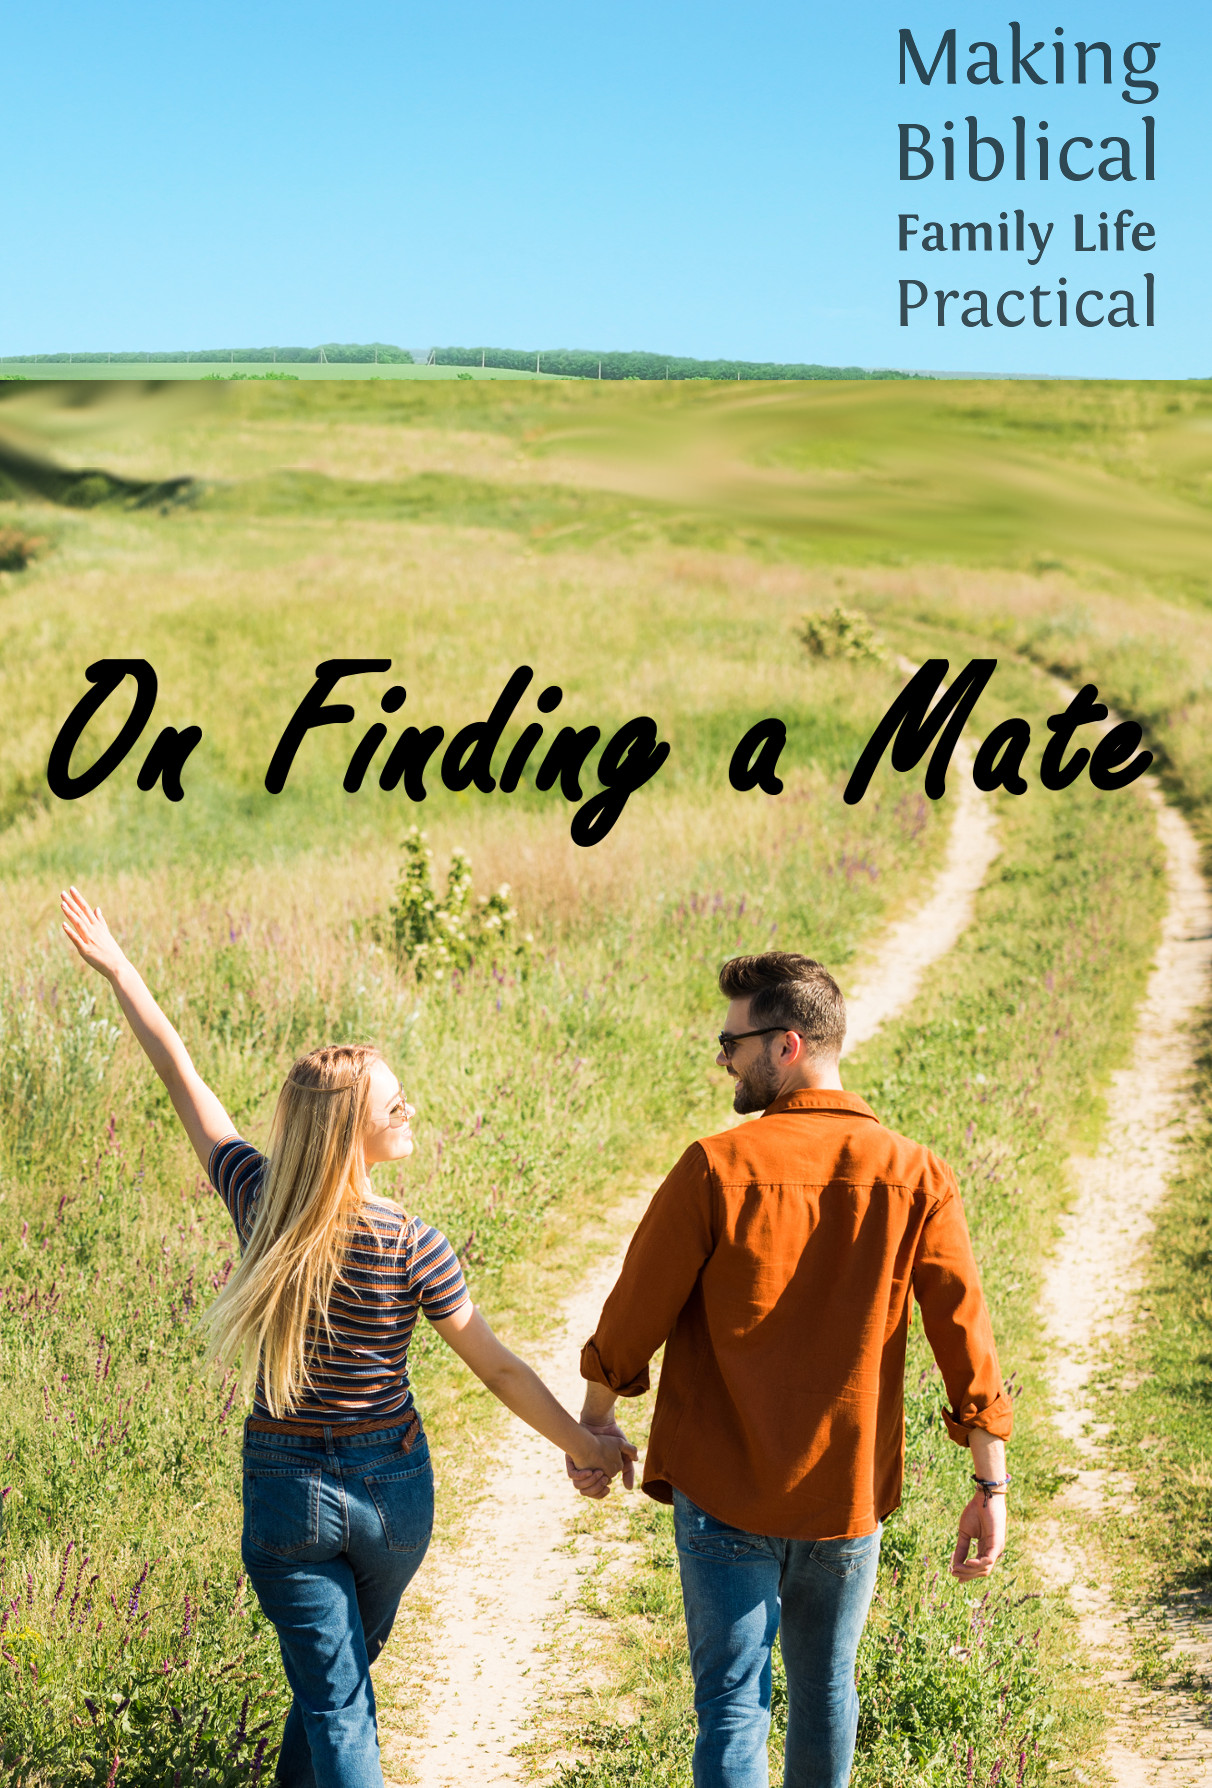 Some thoughts and advice about finding a mate ...